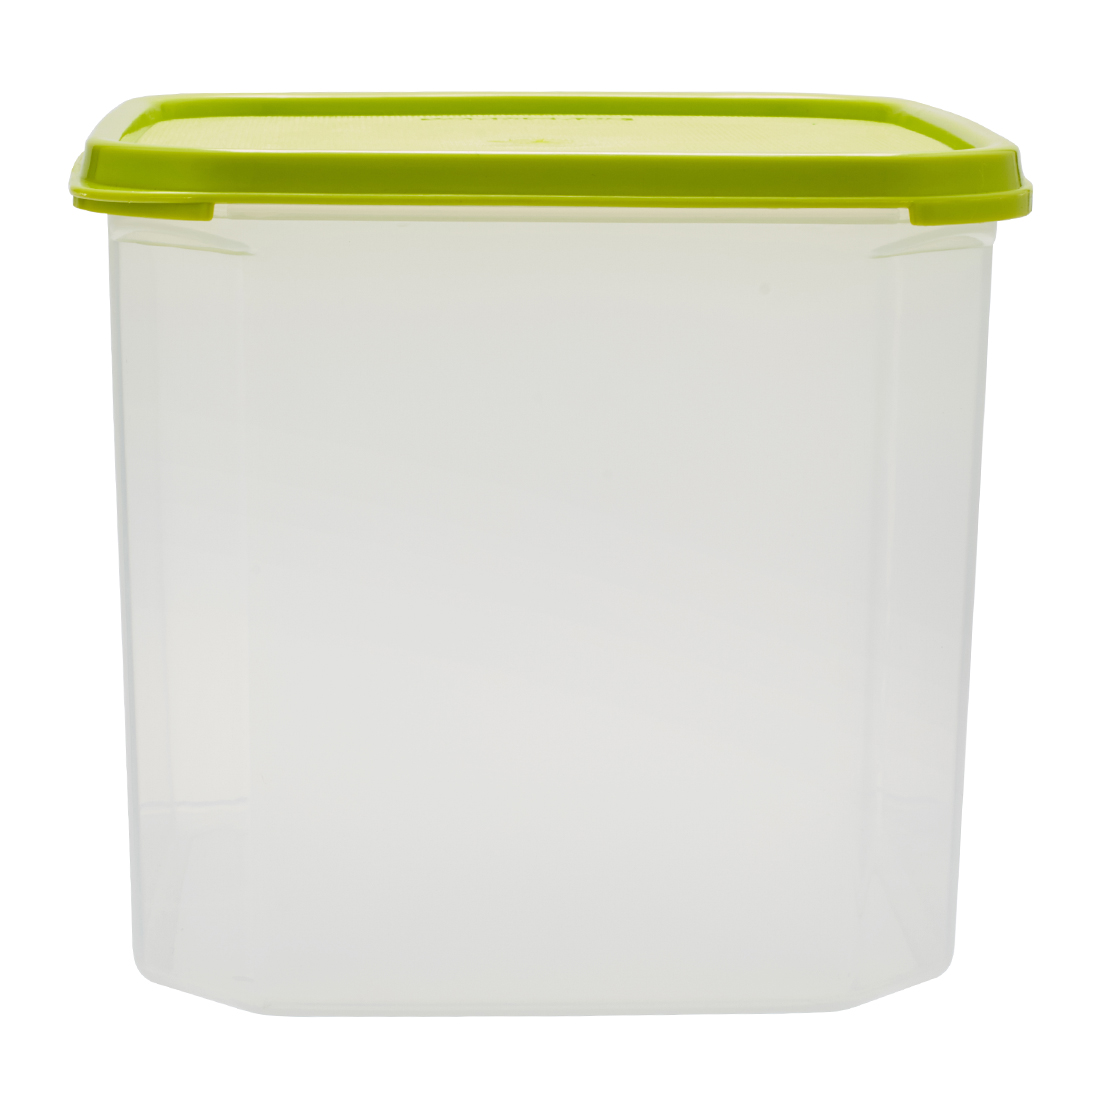 Kitchen Modular Square 4.2 Ltr Green Plastic Containers in Green Colour by Living Essence